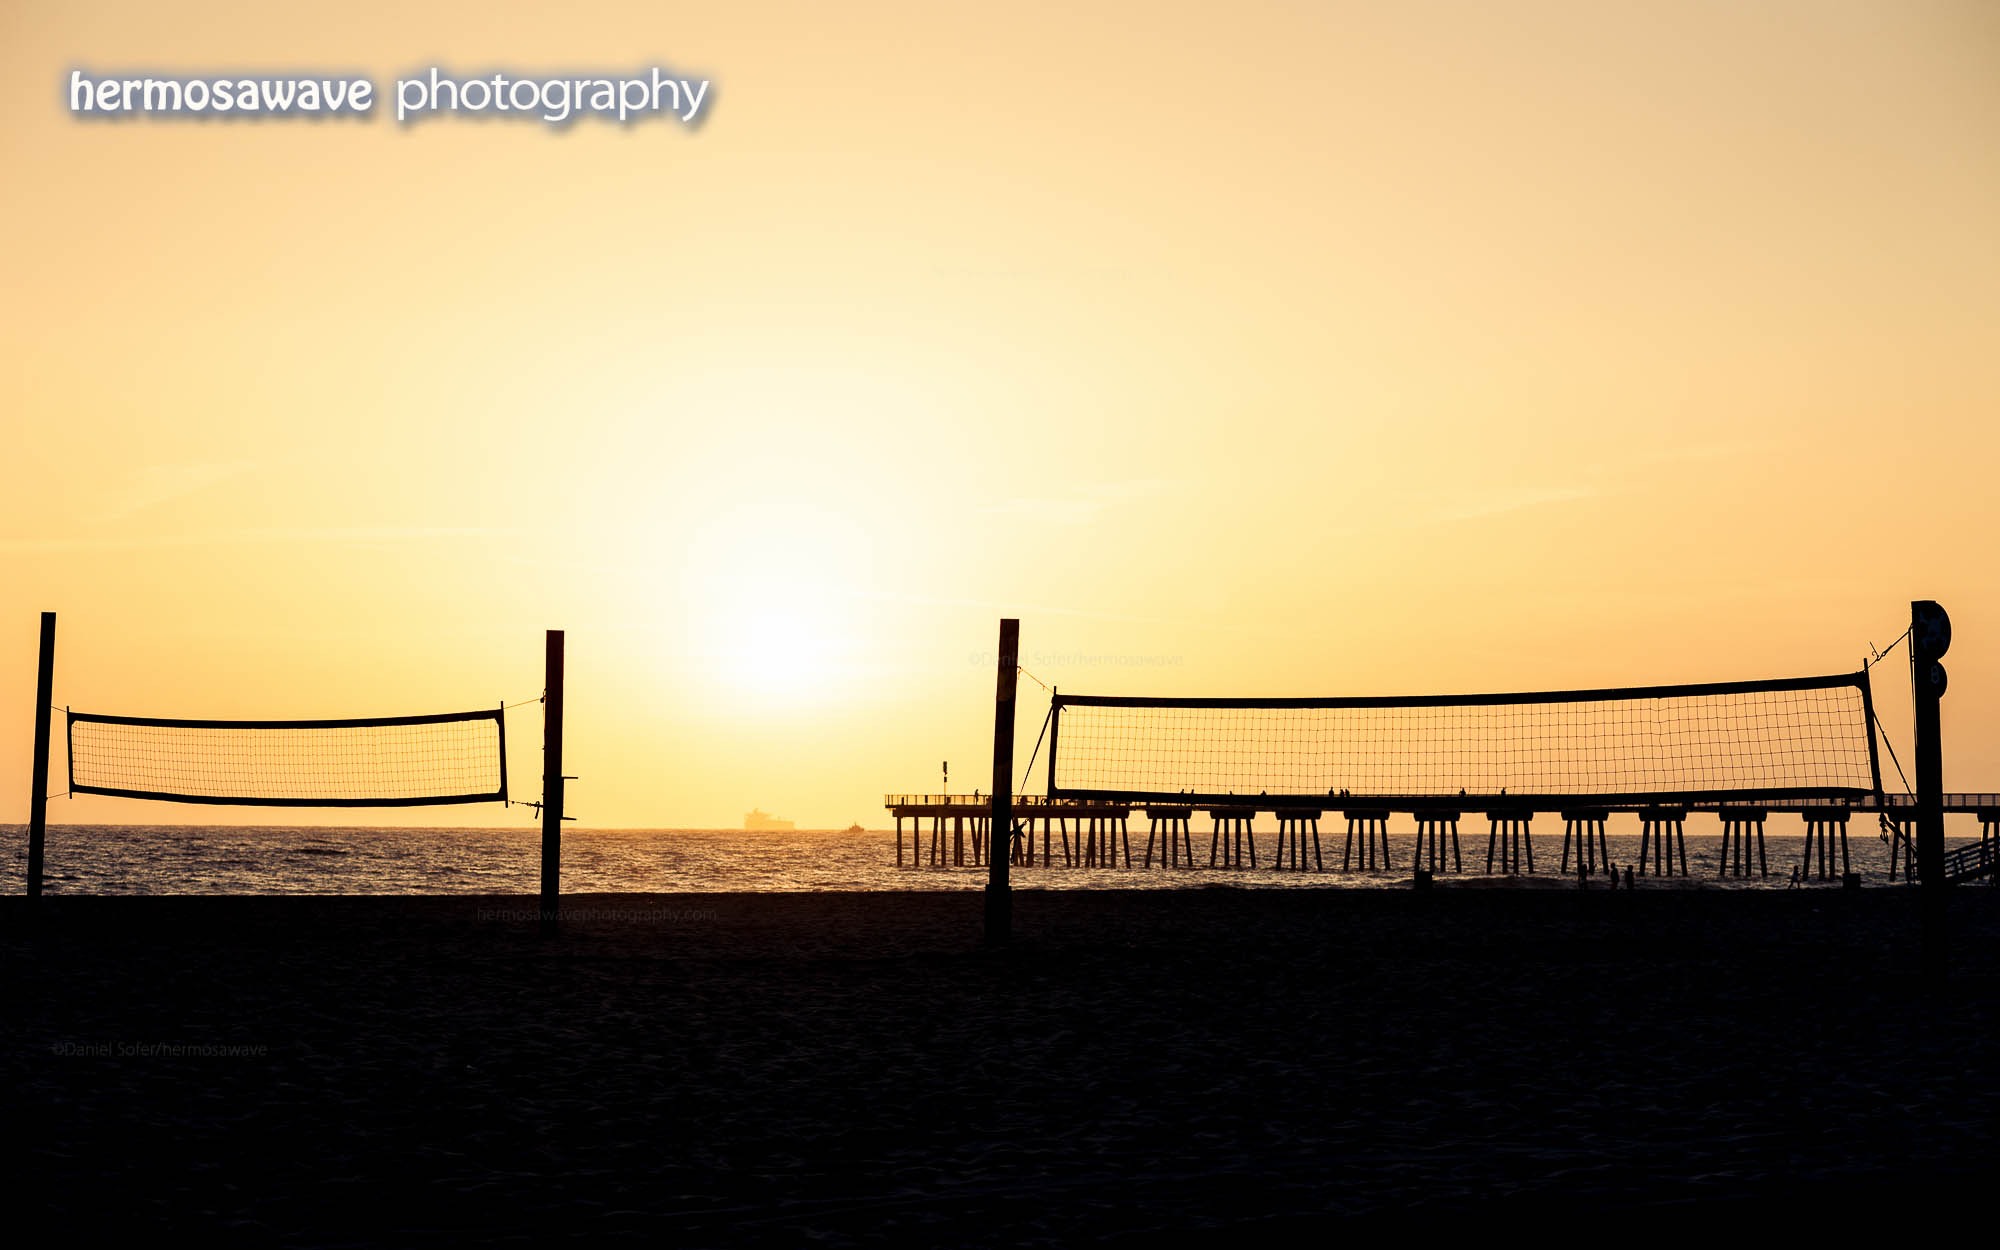 Volleyball Net Silhouette